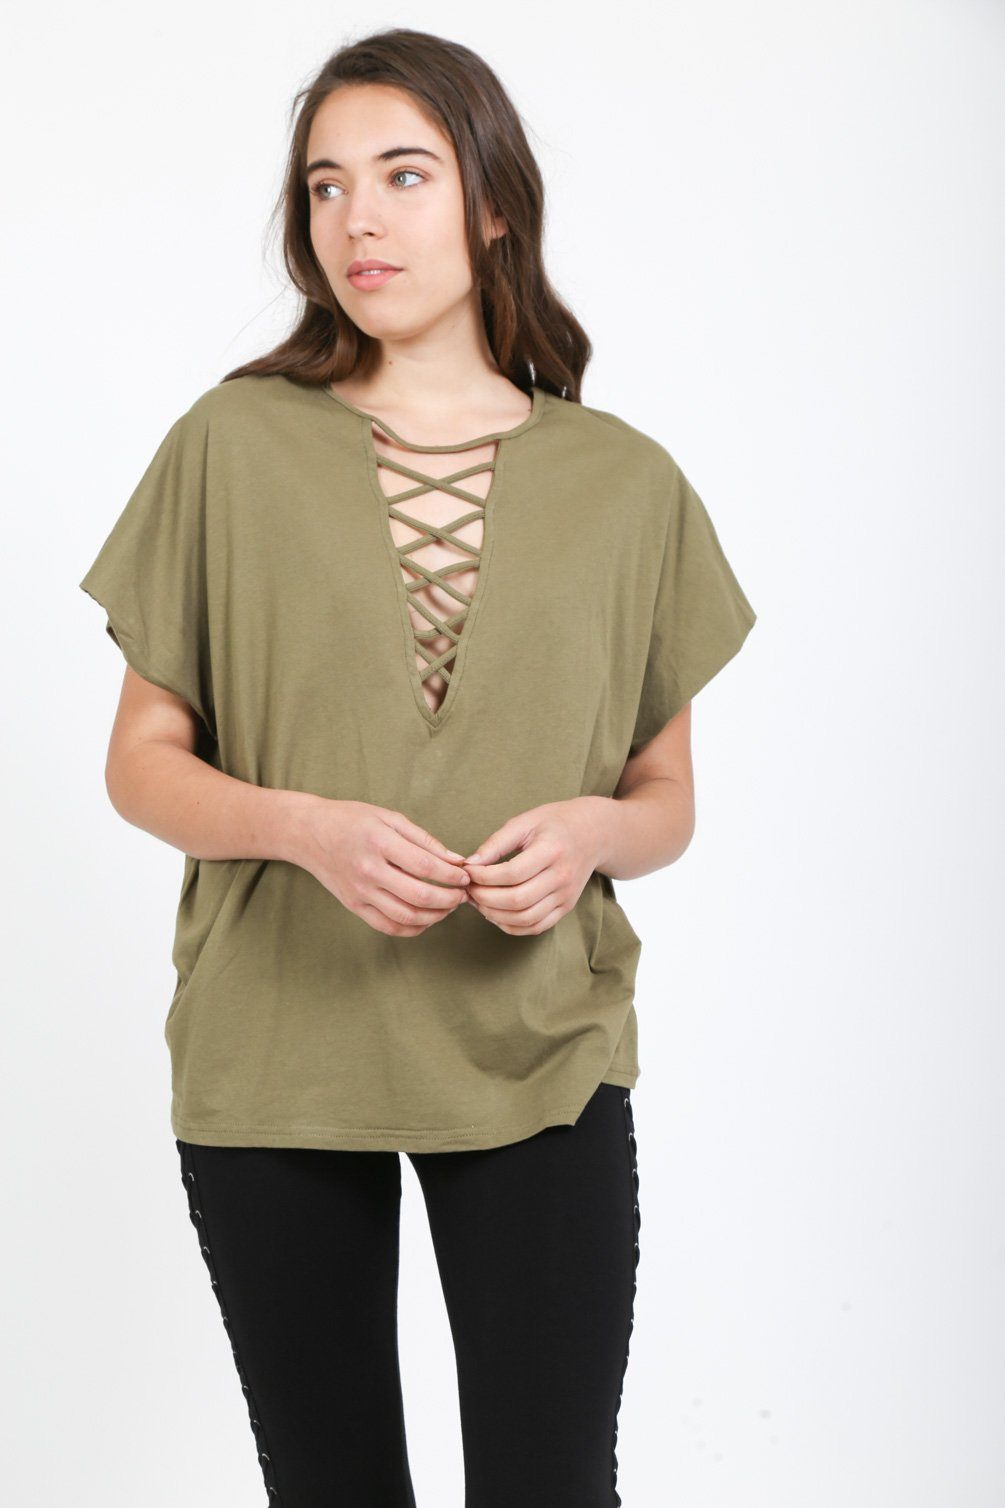 Criss Cross Deep Plunge Tee tops Loveriche s Olive